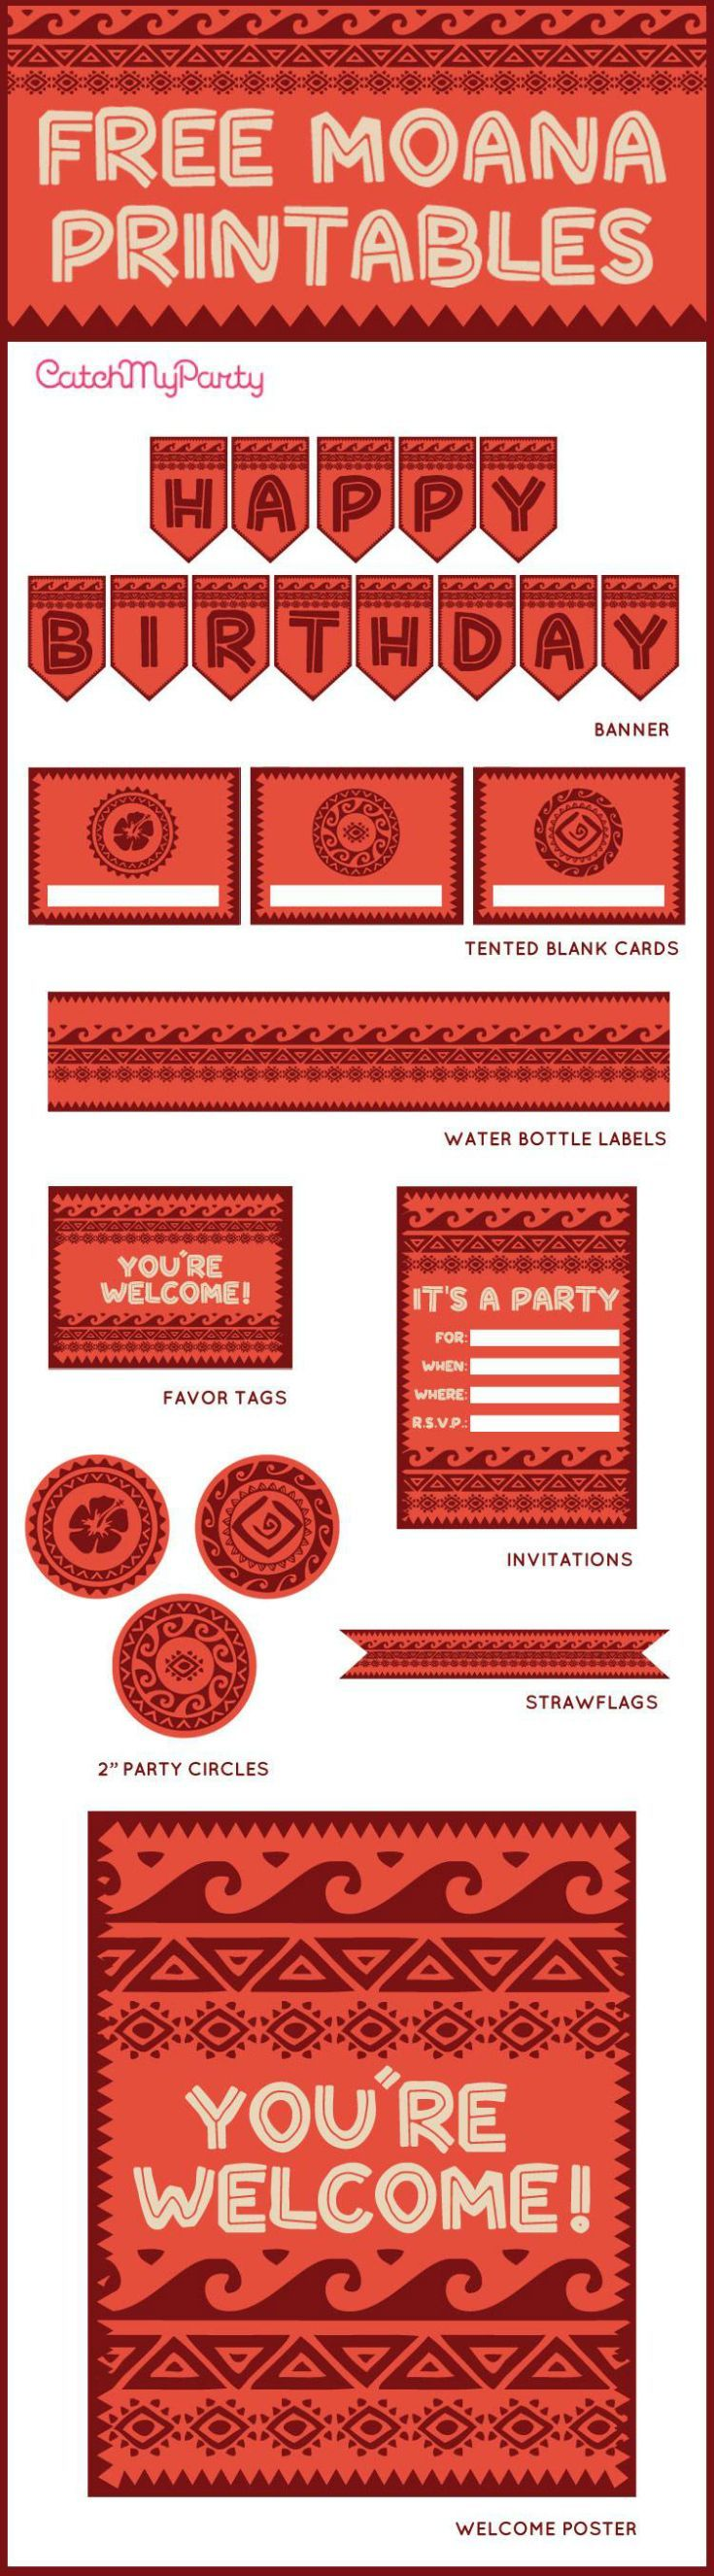 """Free Moana printables to use for your birthday party. The collection includes birthday invitations, cupcake toppers, a """"Happy Birthday"""" banner, a welcome sign, favor tags and more! 